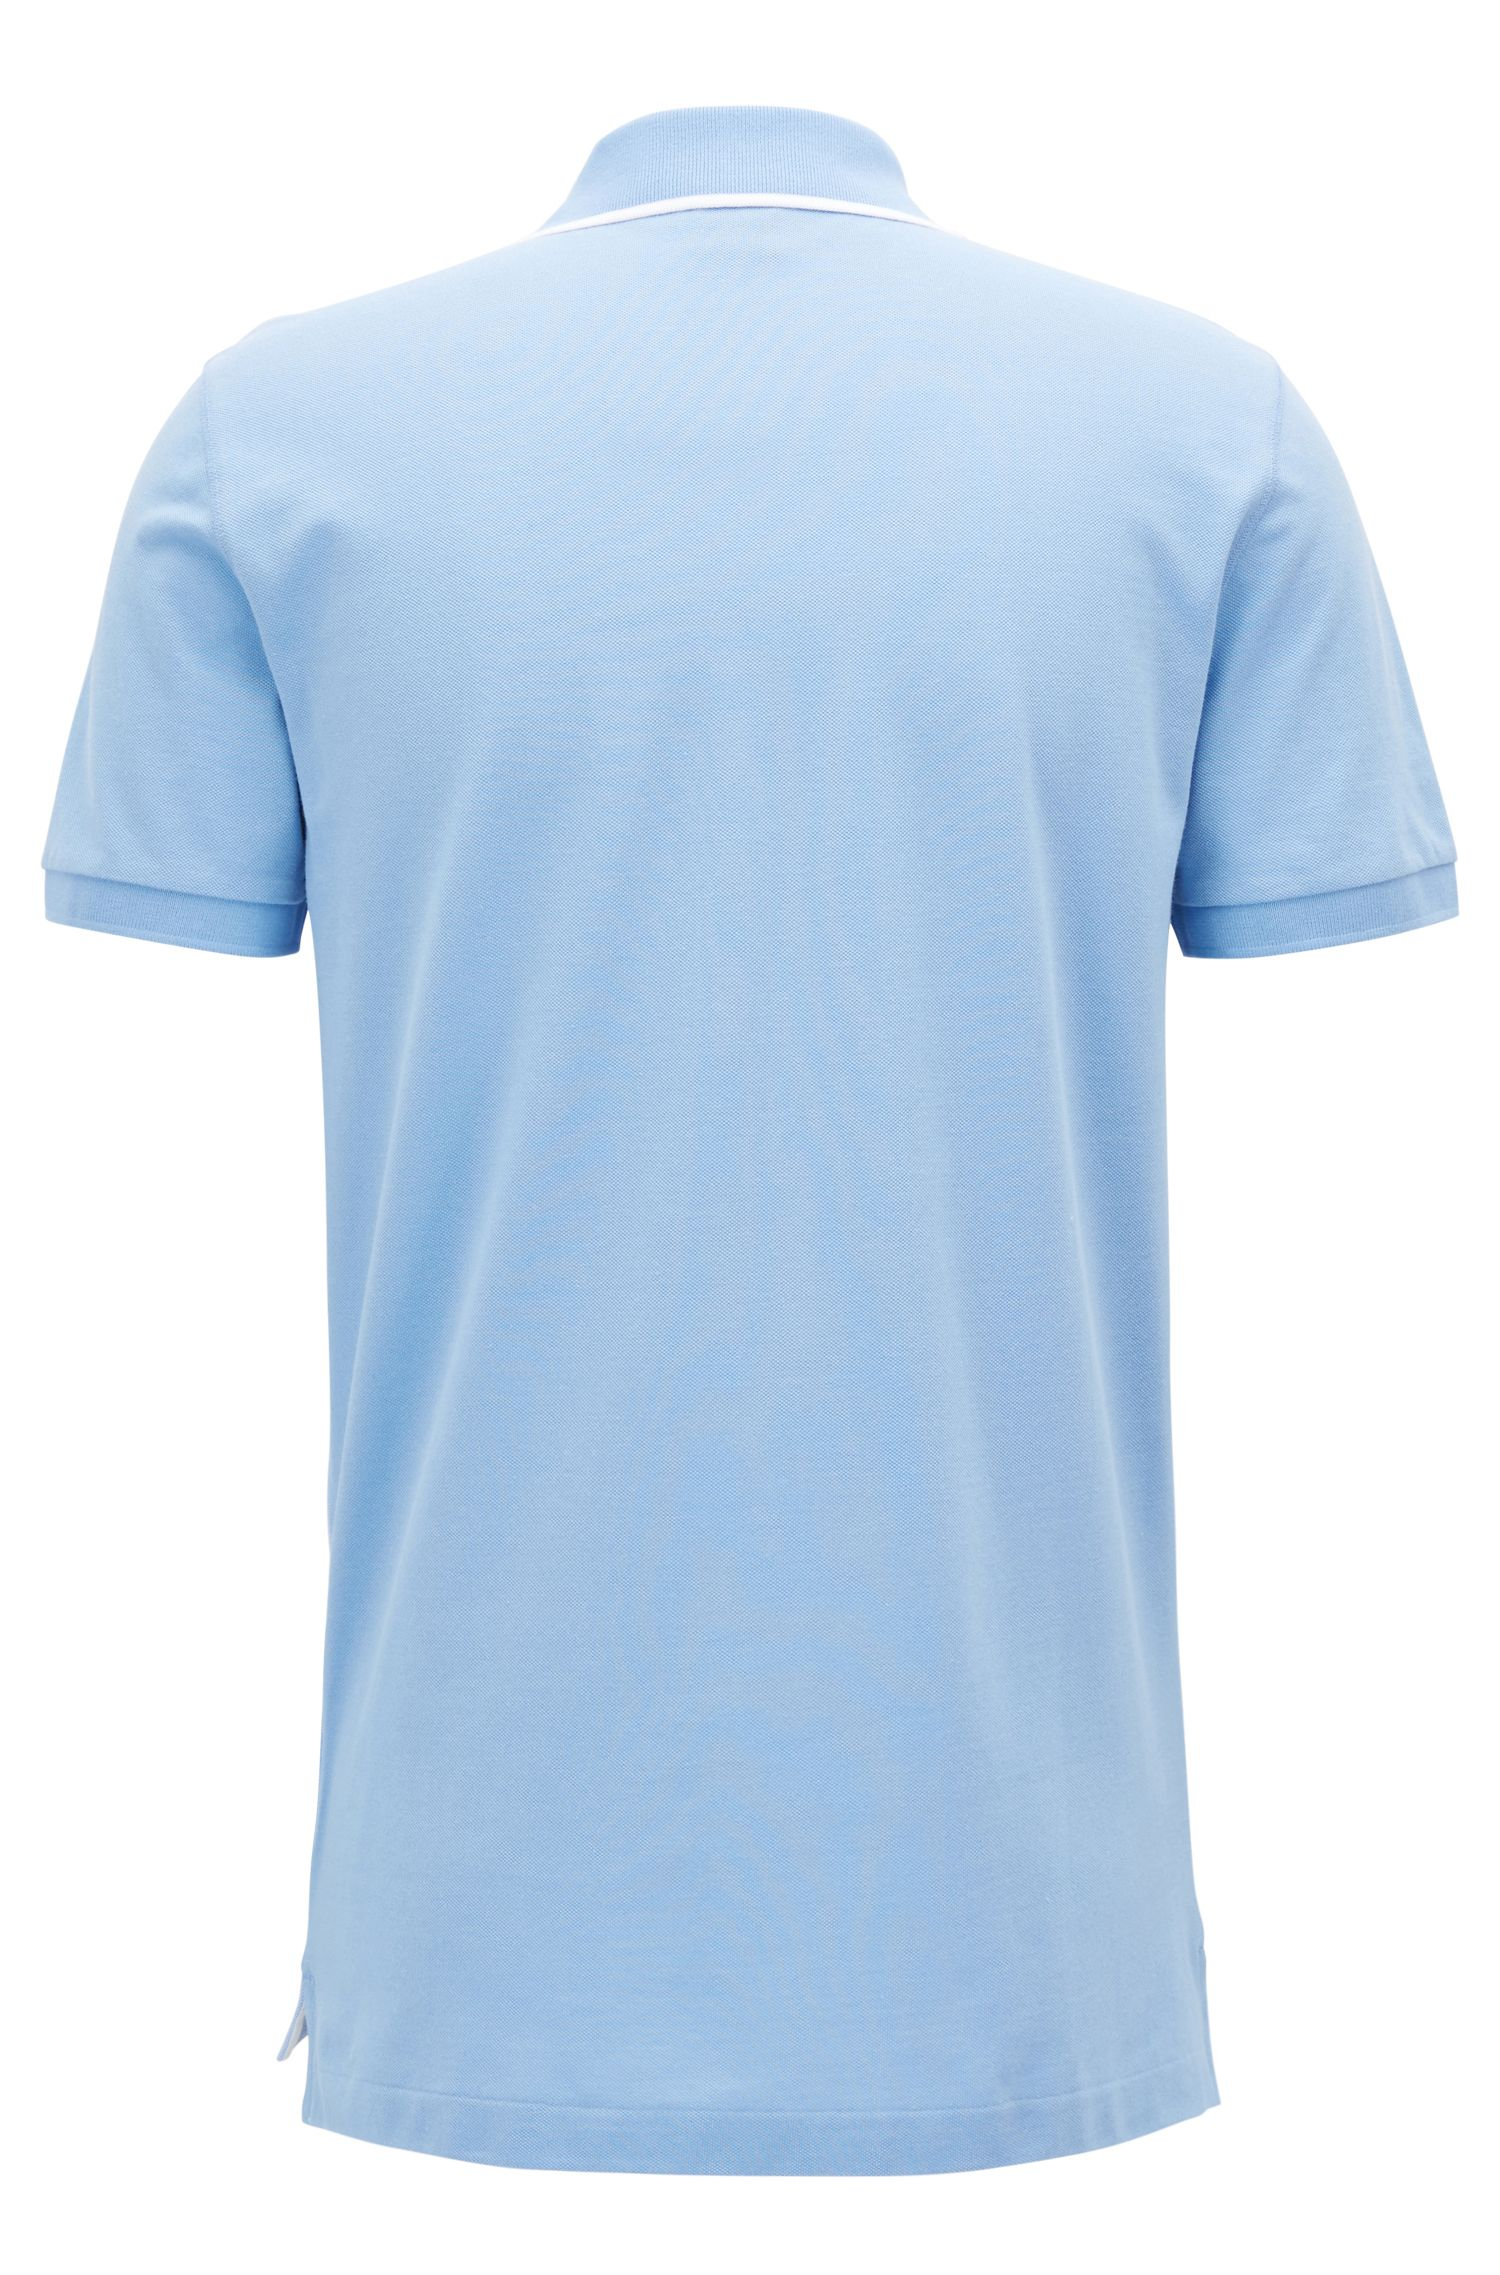 Trimmed Pima Cotton Polo Shirt, Regular Fit | Parlay, Light Blue